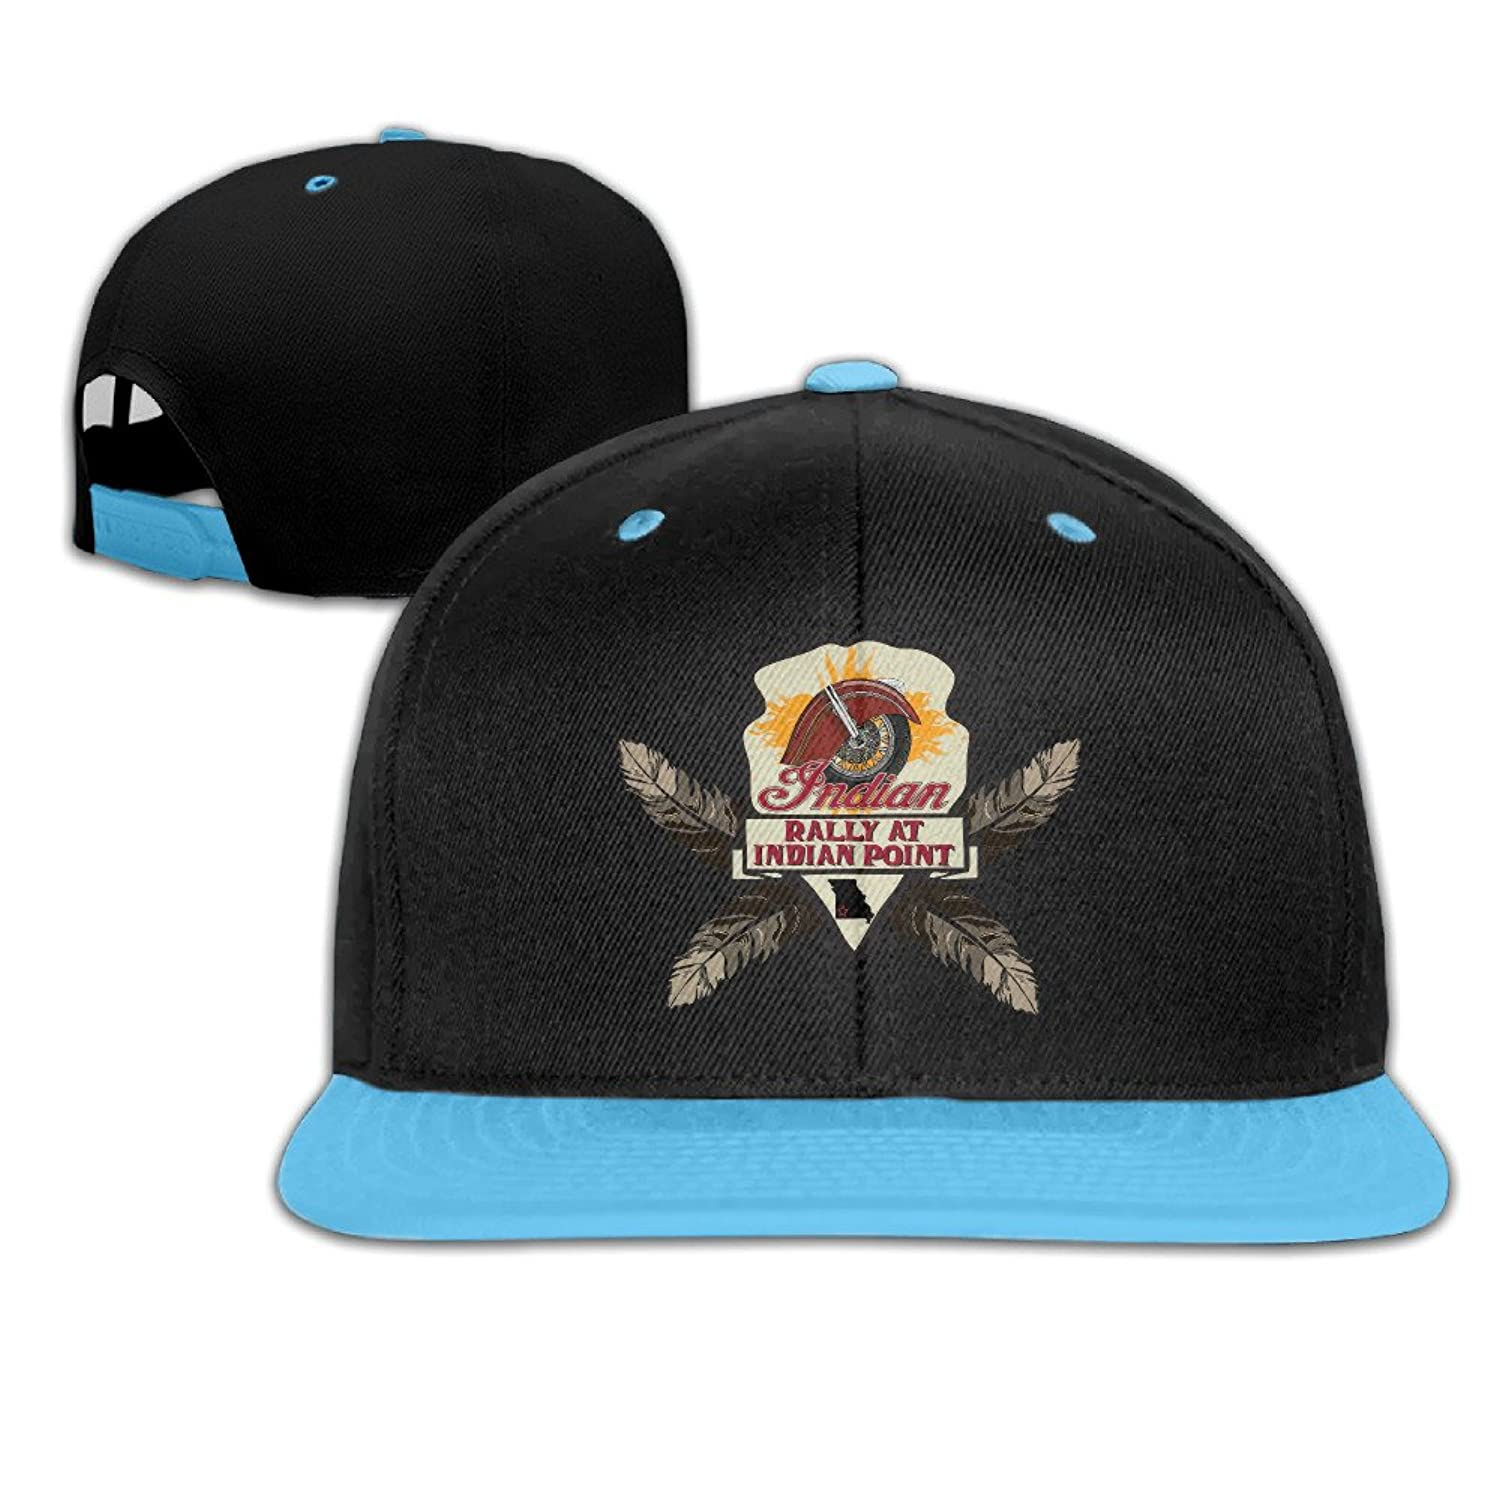 Unisex-child Fitted Caps Indian Motorcycle Adjustable Snapbak